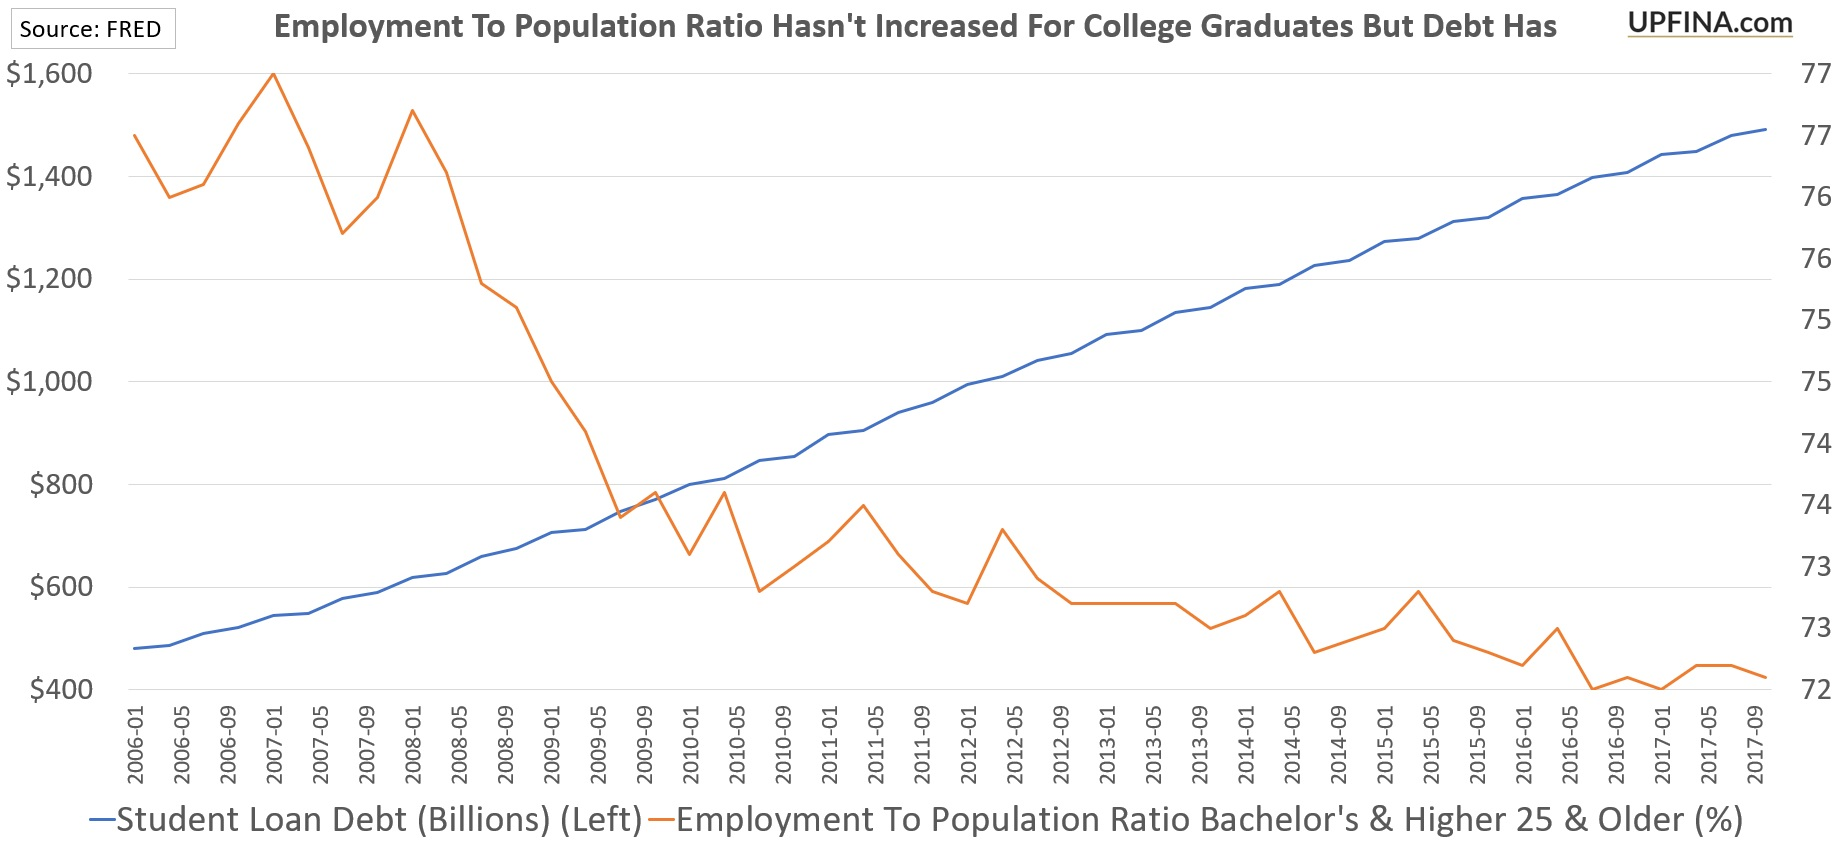 Employment To Population Ratio For College Graduates Versus Student Loan Debt